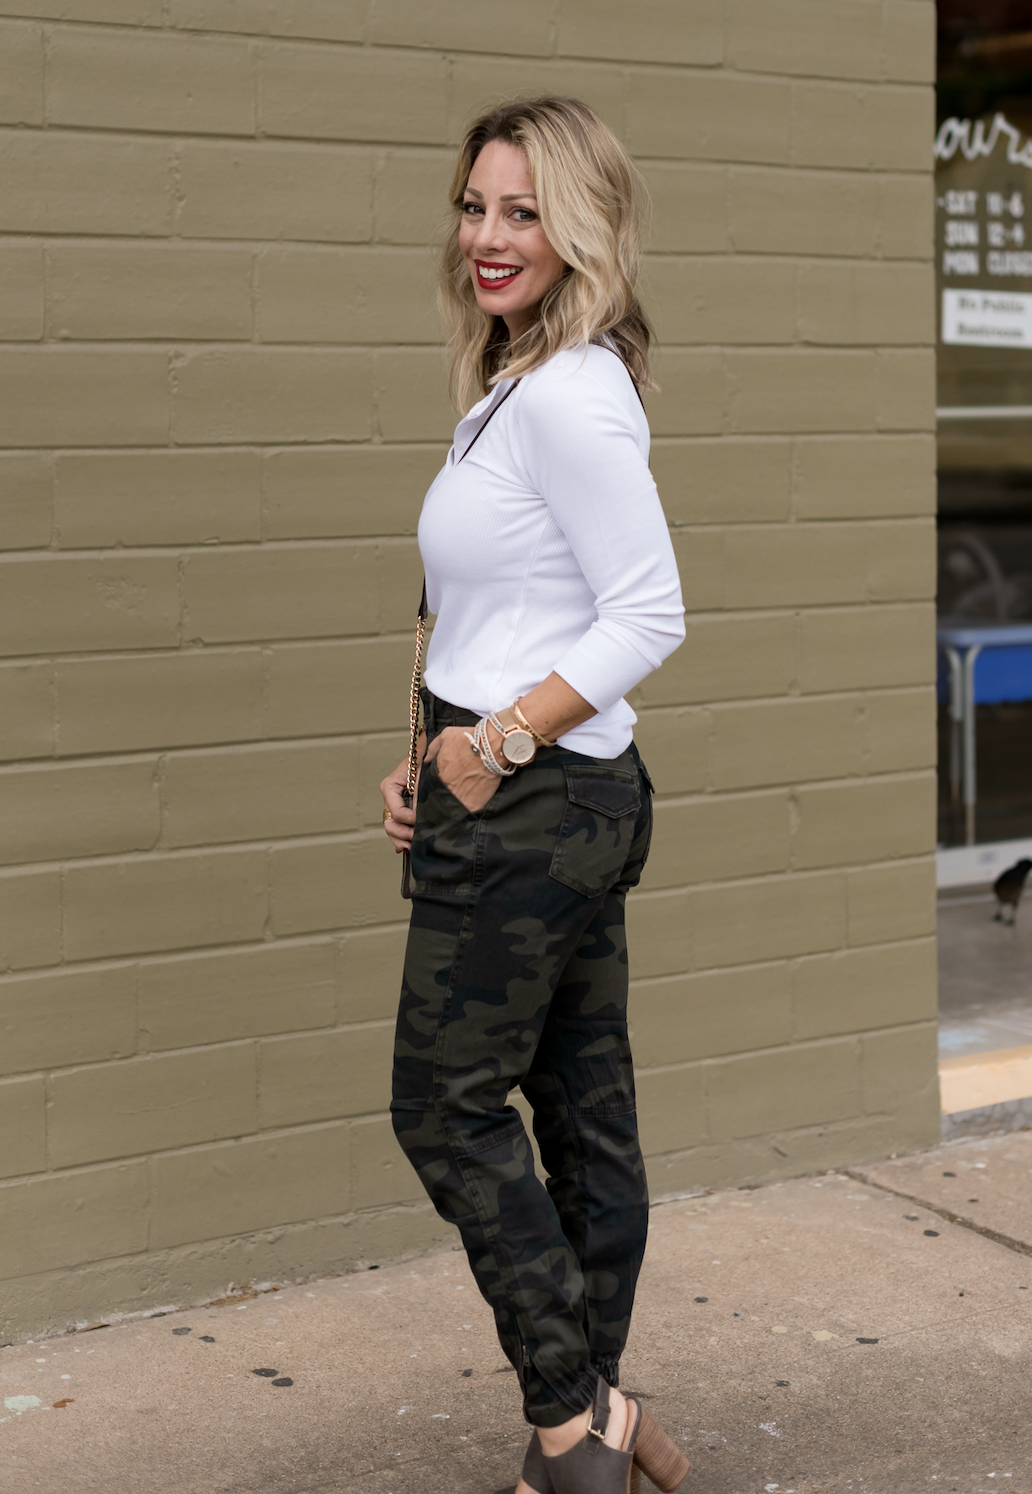 White Top With Camo Pants